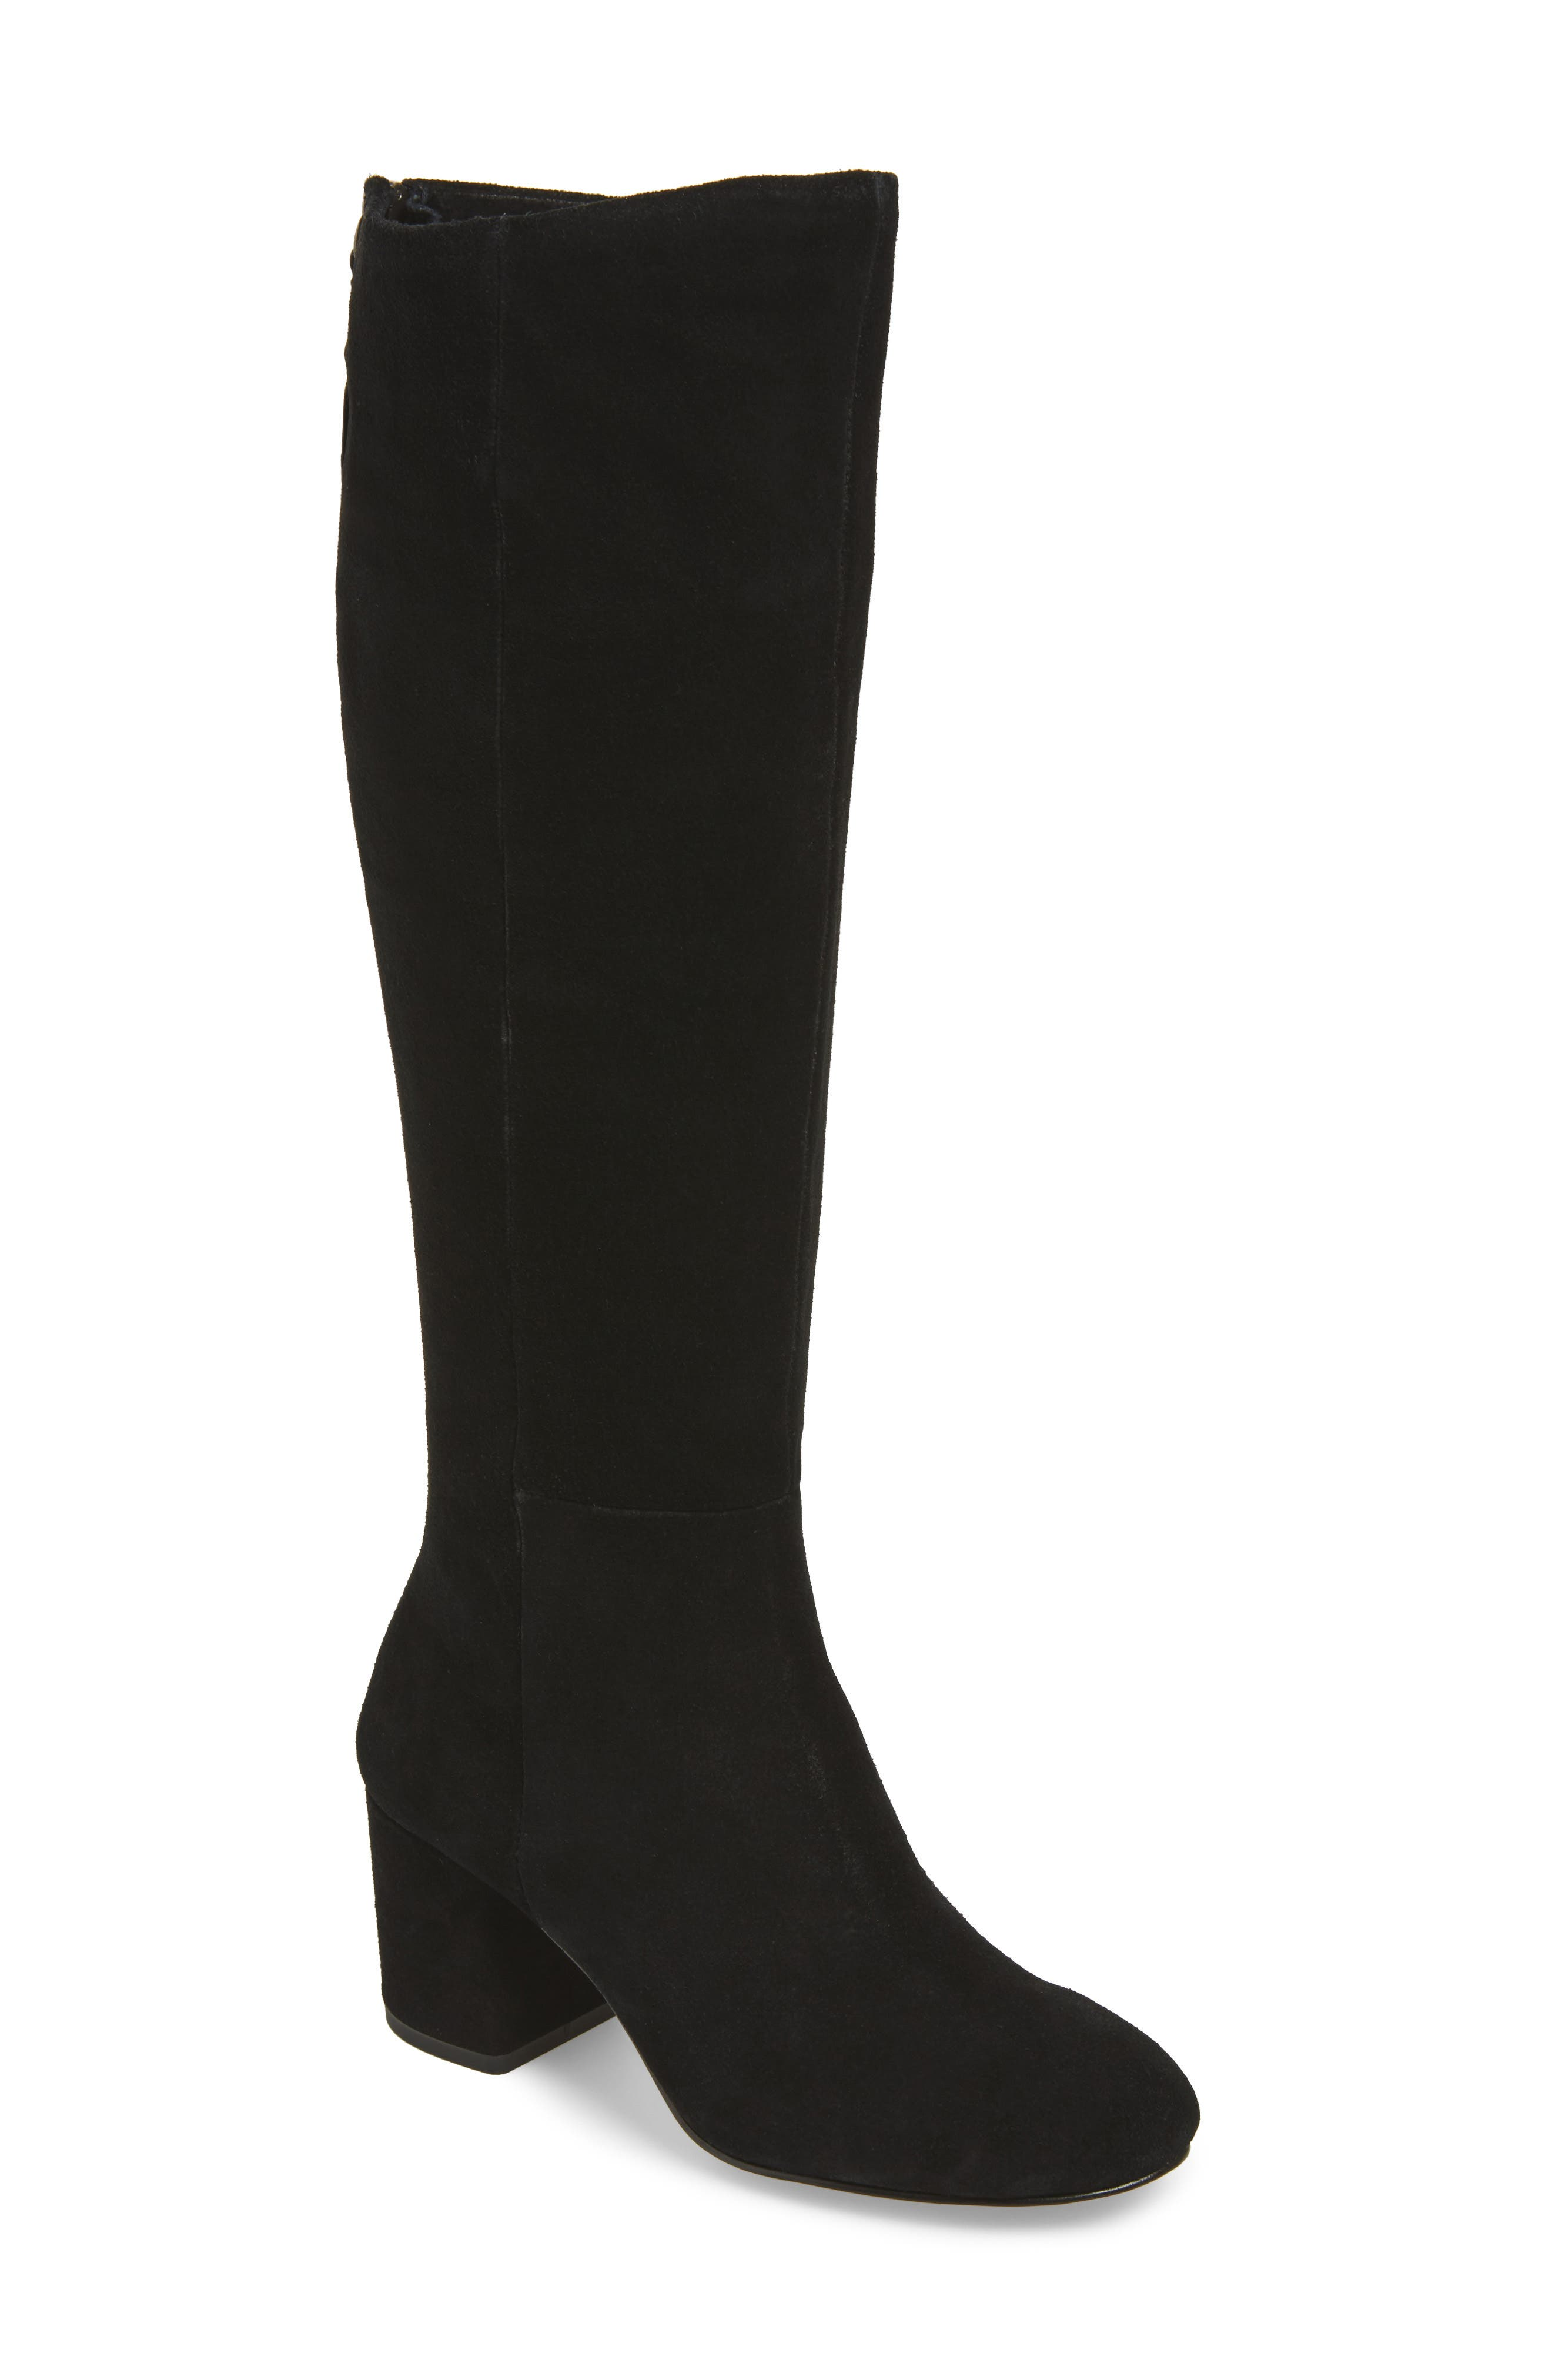 Danise Knee High Boot,                         Main,                         color, 013